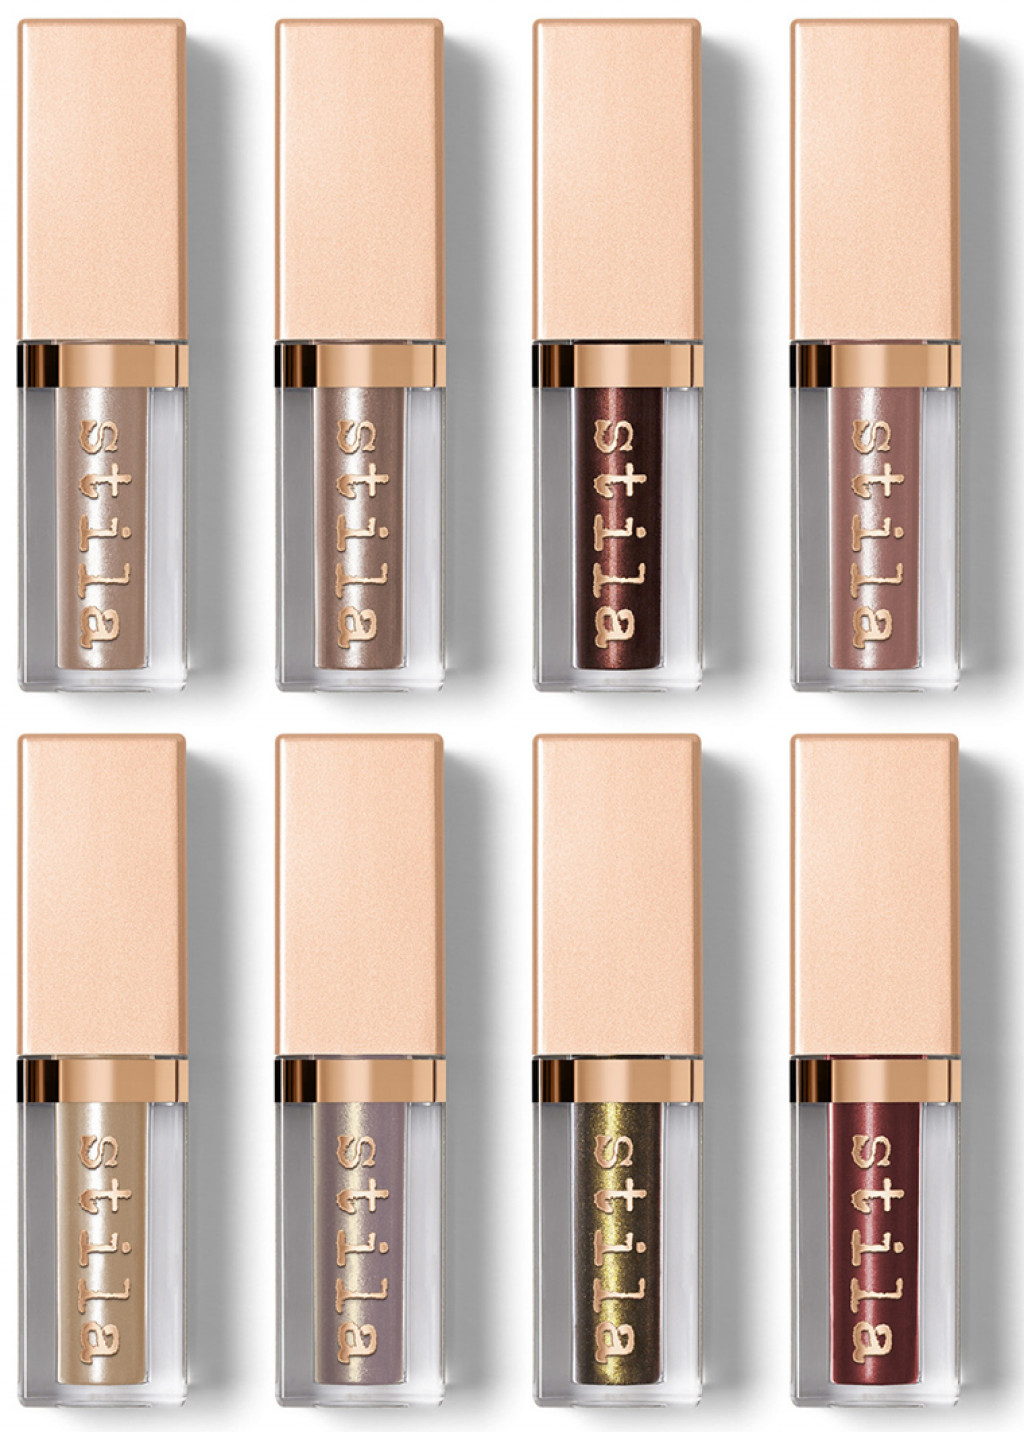 Stila Shimmer  Glow Liquid Eyeshadow  Makeup  Beautyalmanac-7258